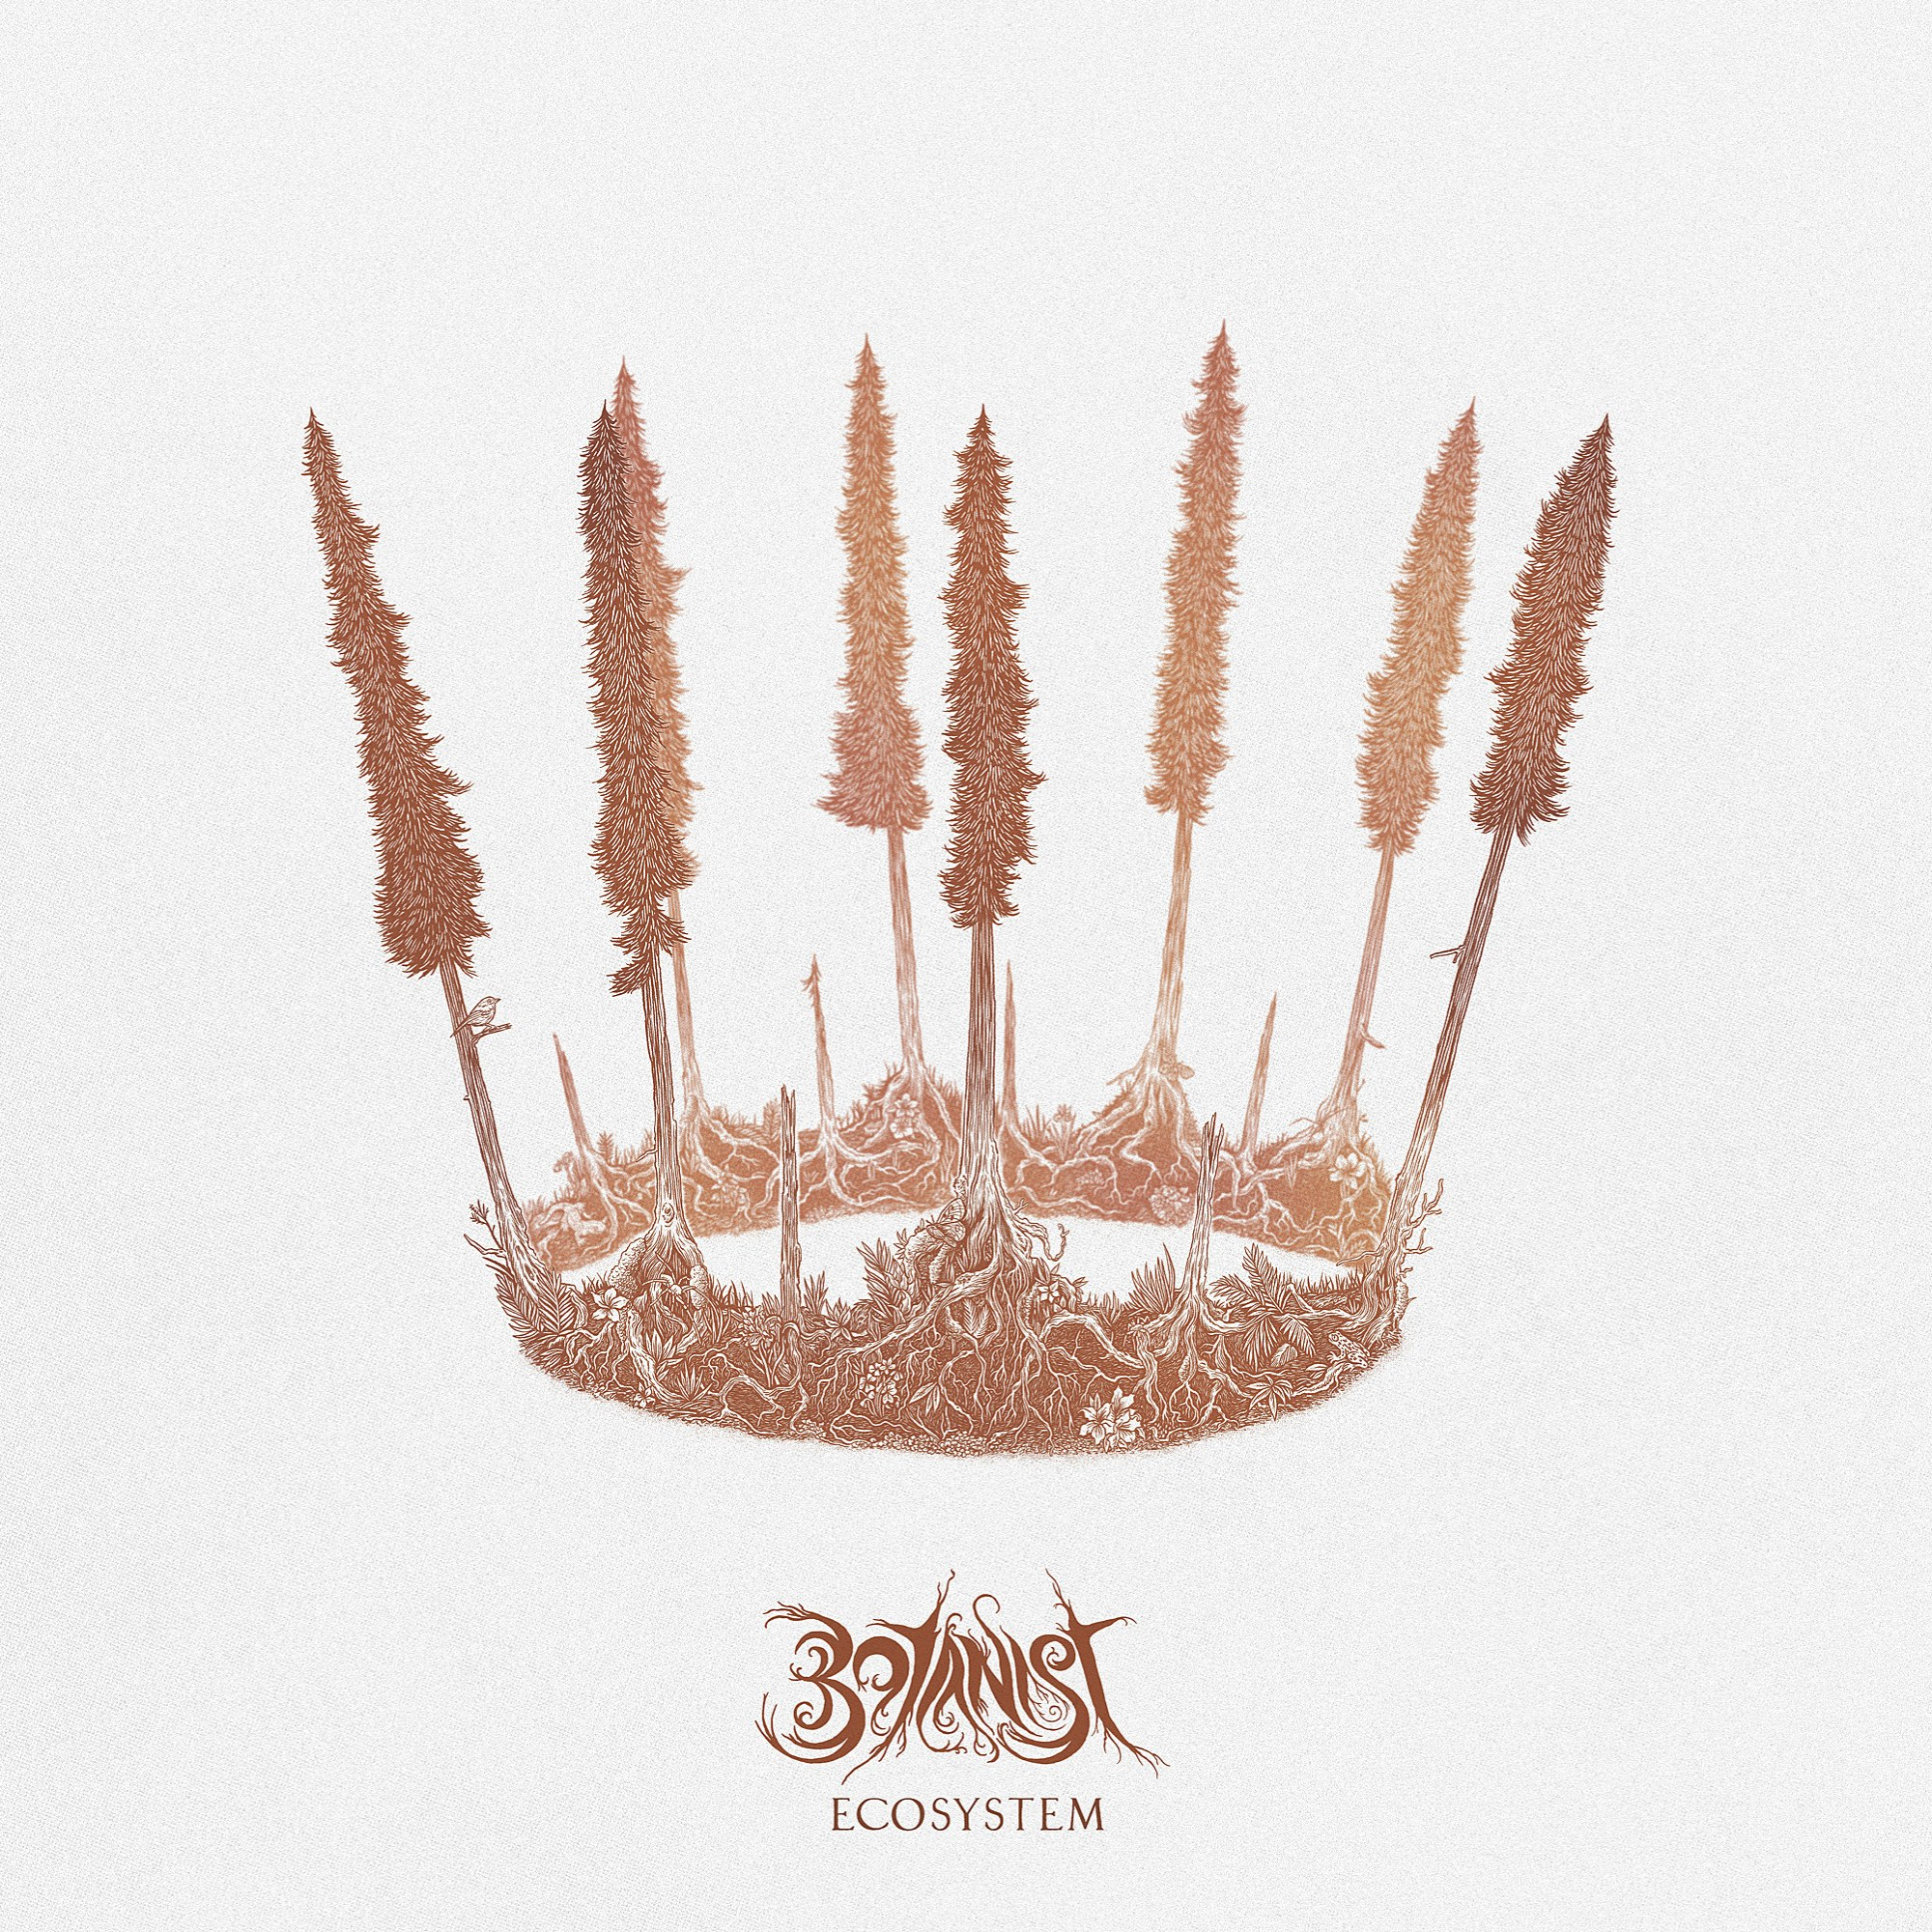 Review for Botanist - Ecosystem